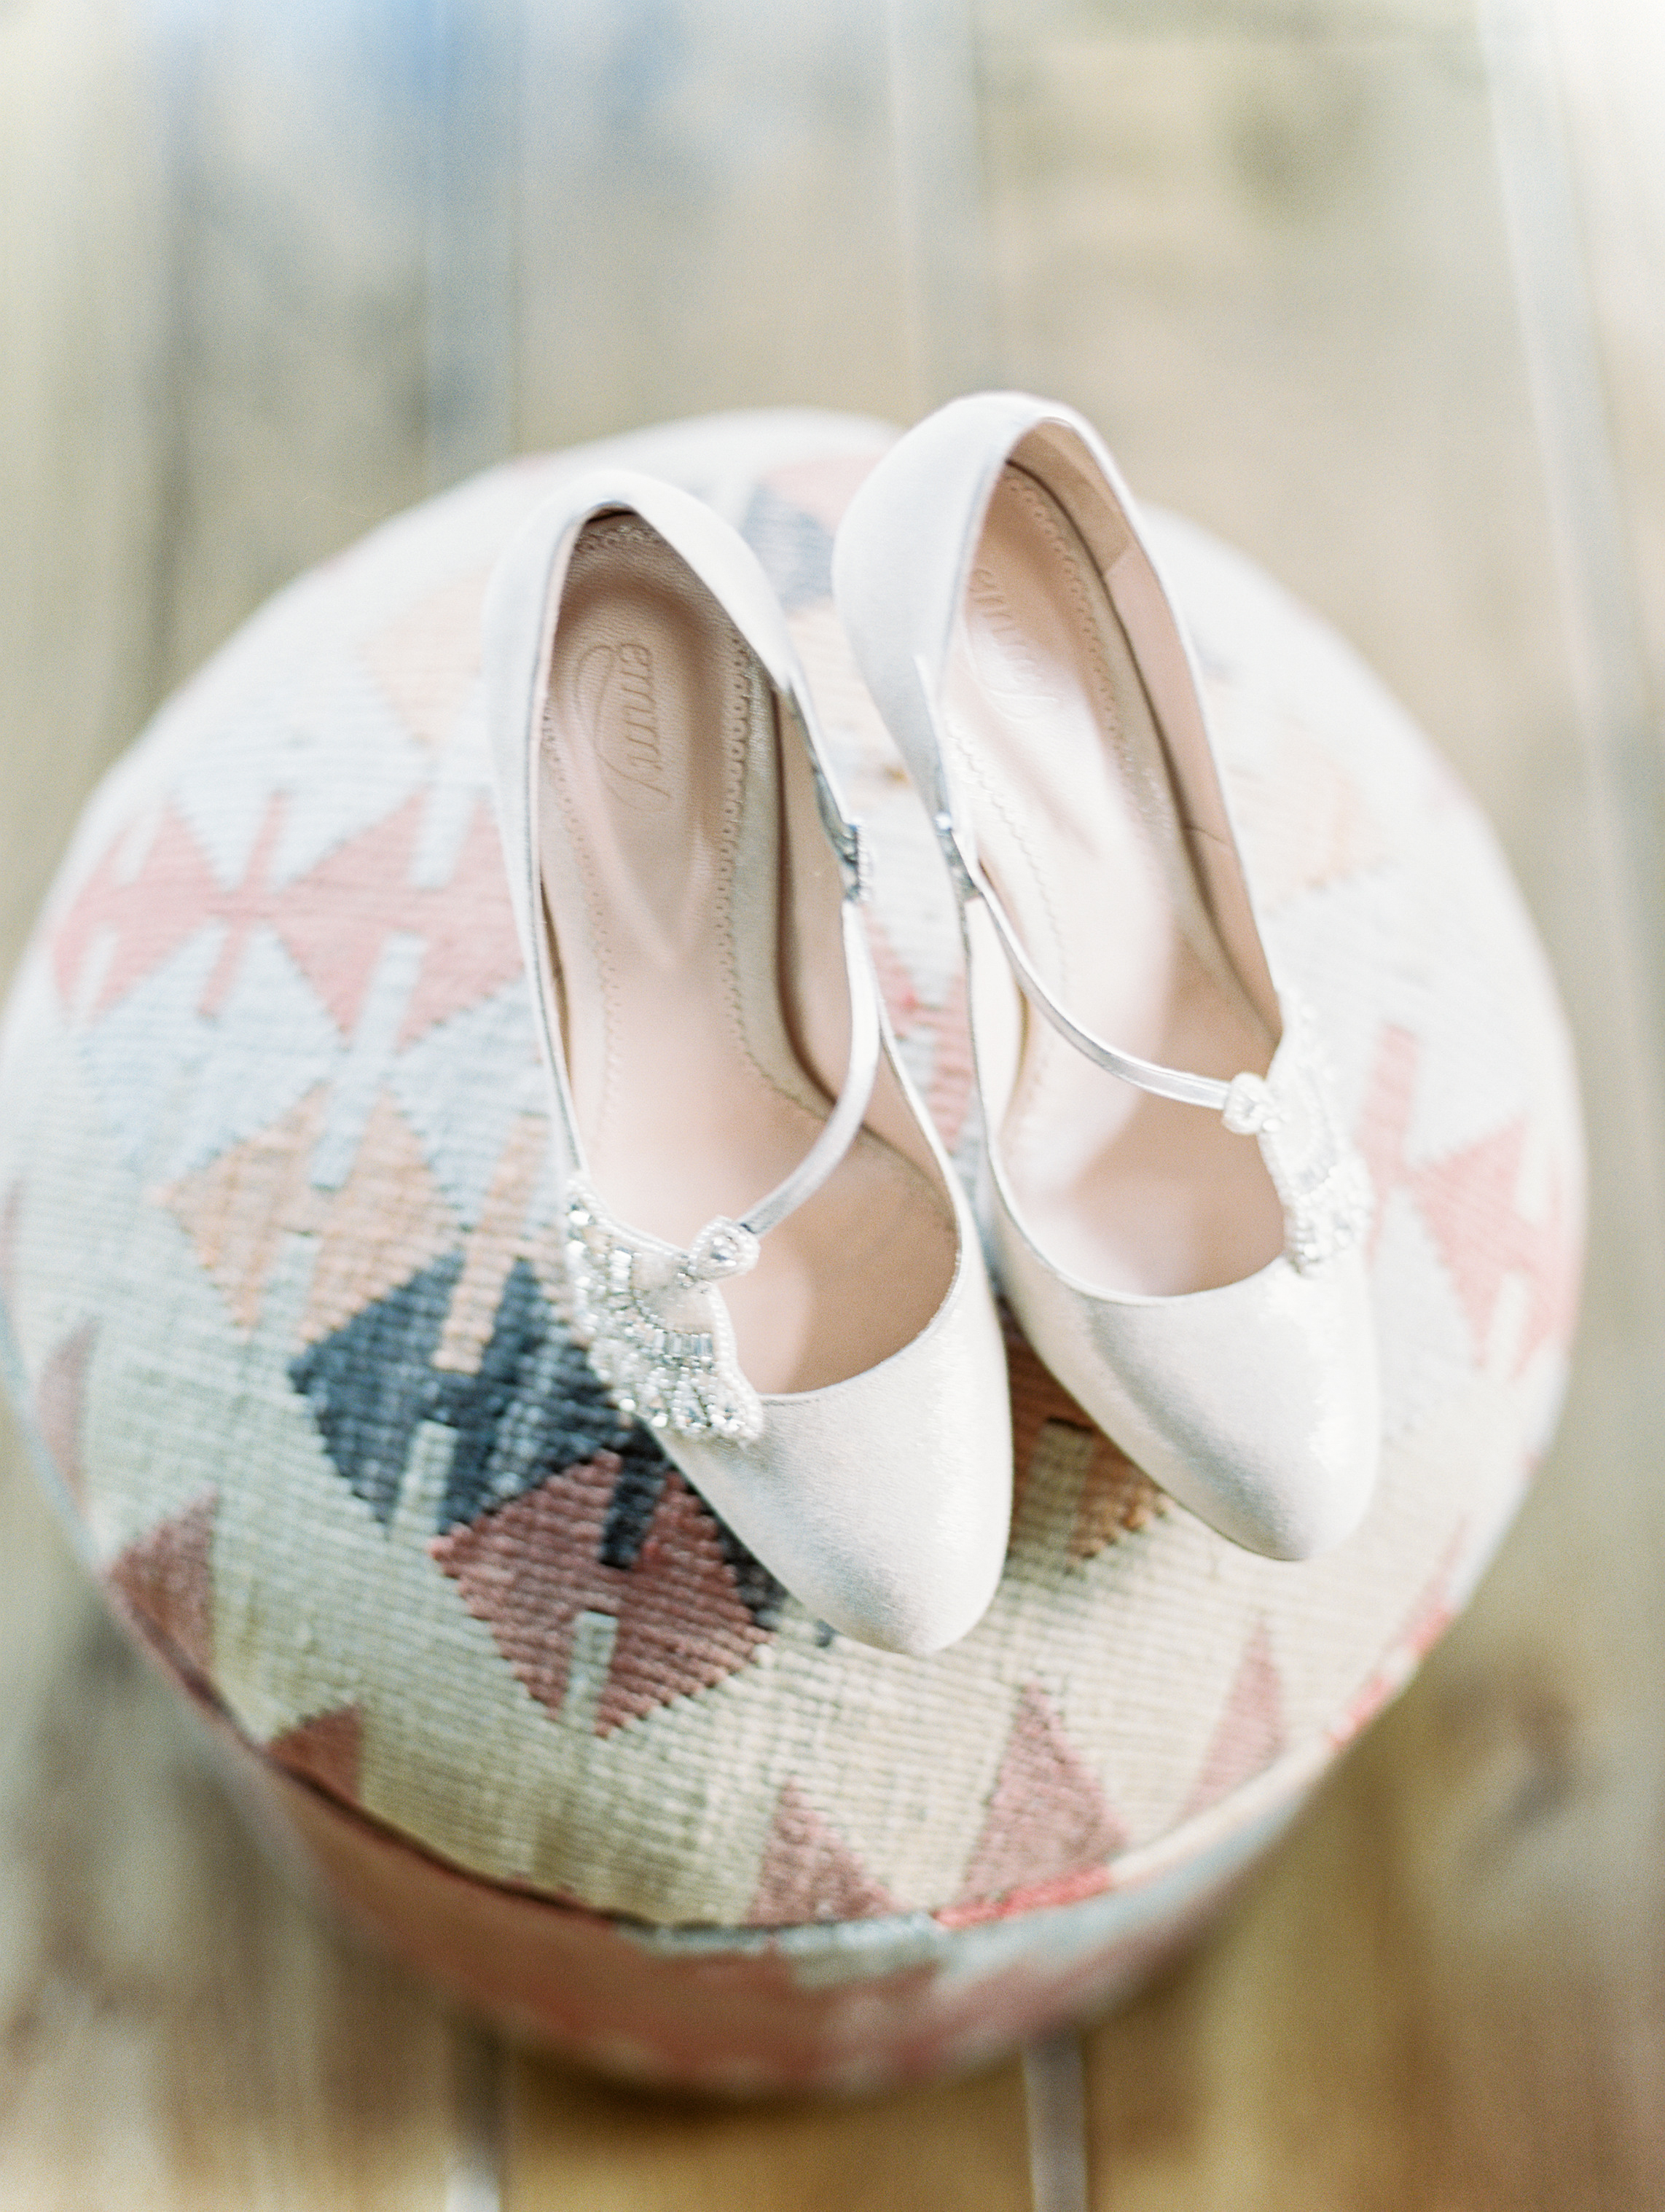 Bohemian Wedding Inspiration at Brush Creek Ranch | Emmy London shoes from Little White Dress Bridal Shop | Photography: Lisa O'Dwyer